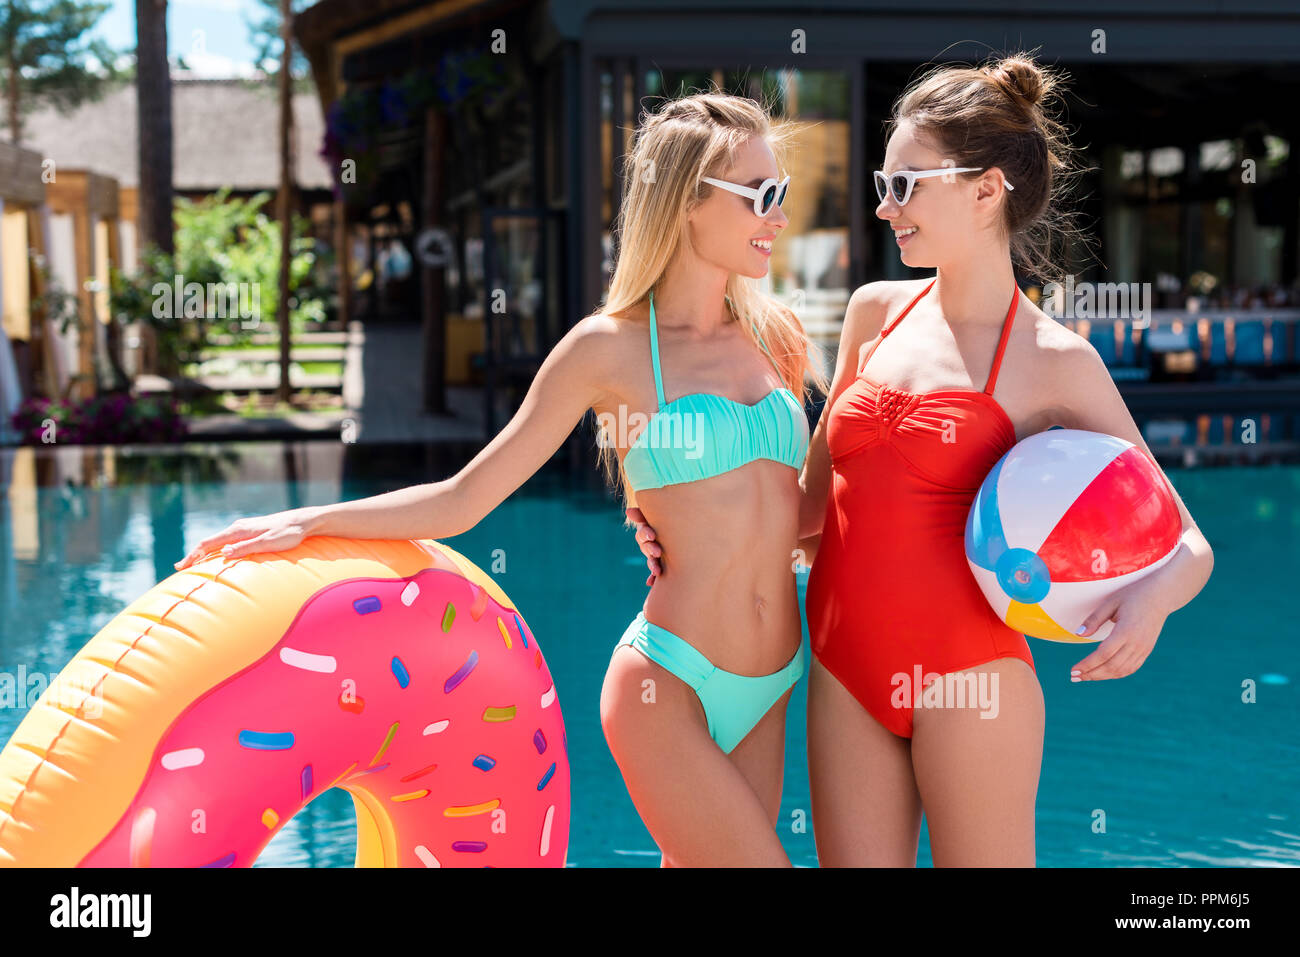 beautiful young women with inflatable ring in shape of donut and beach ball standing at poolside and looking at each other - Stock Image